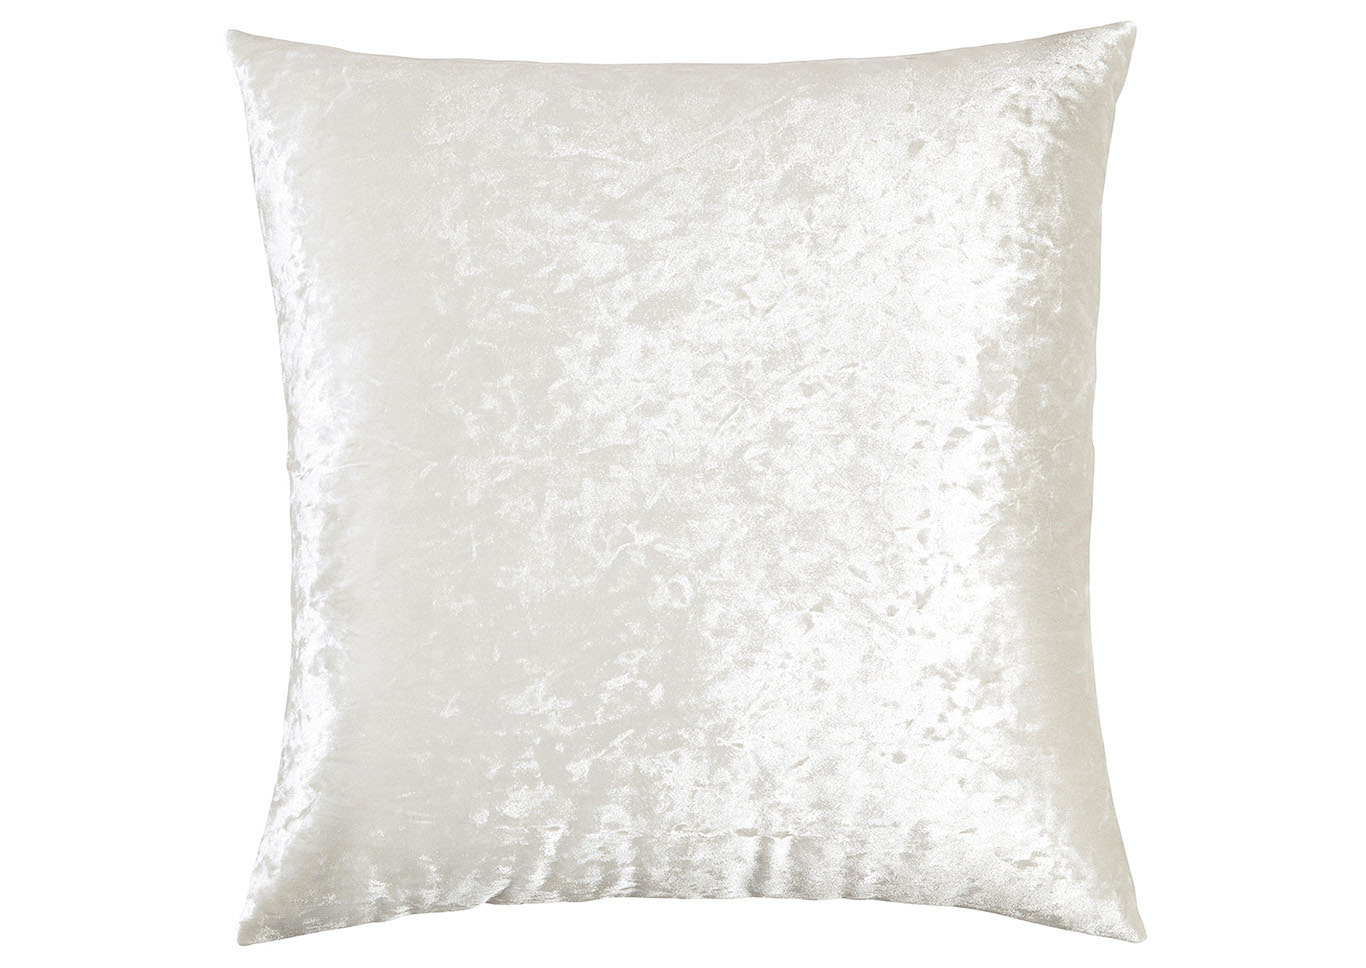 Misae Pillow,Signature Design By Ashley